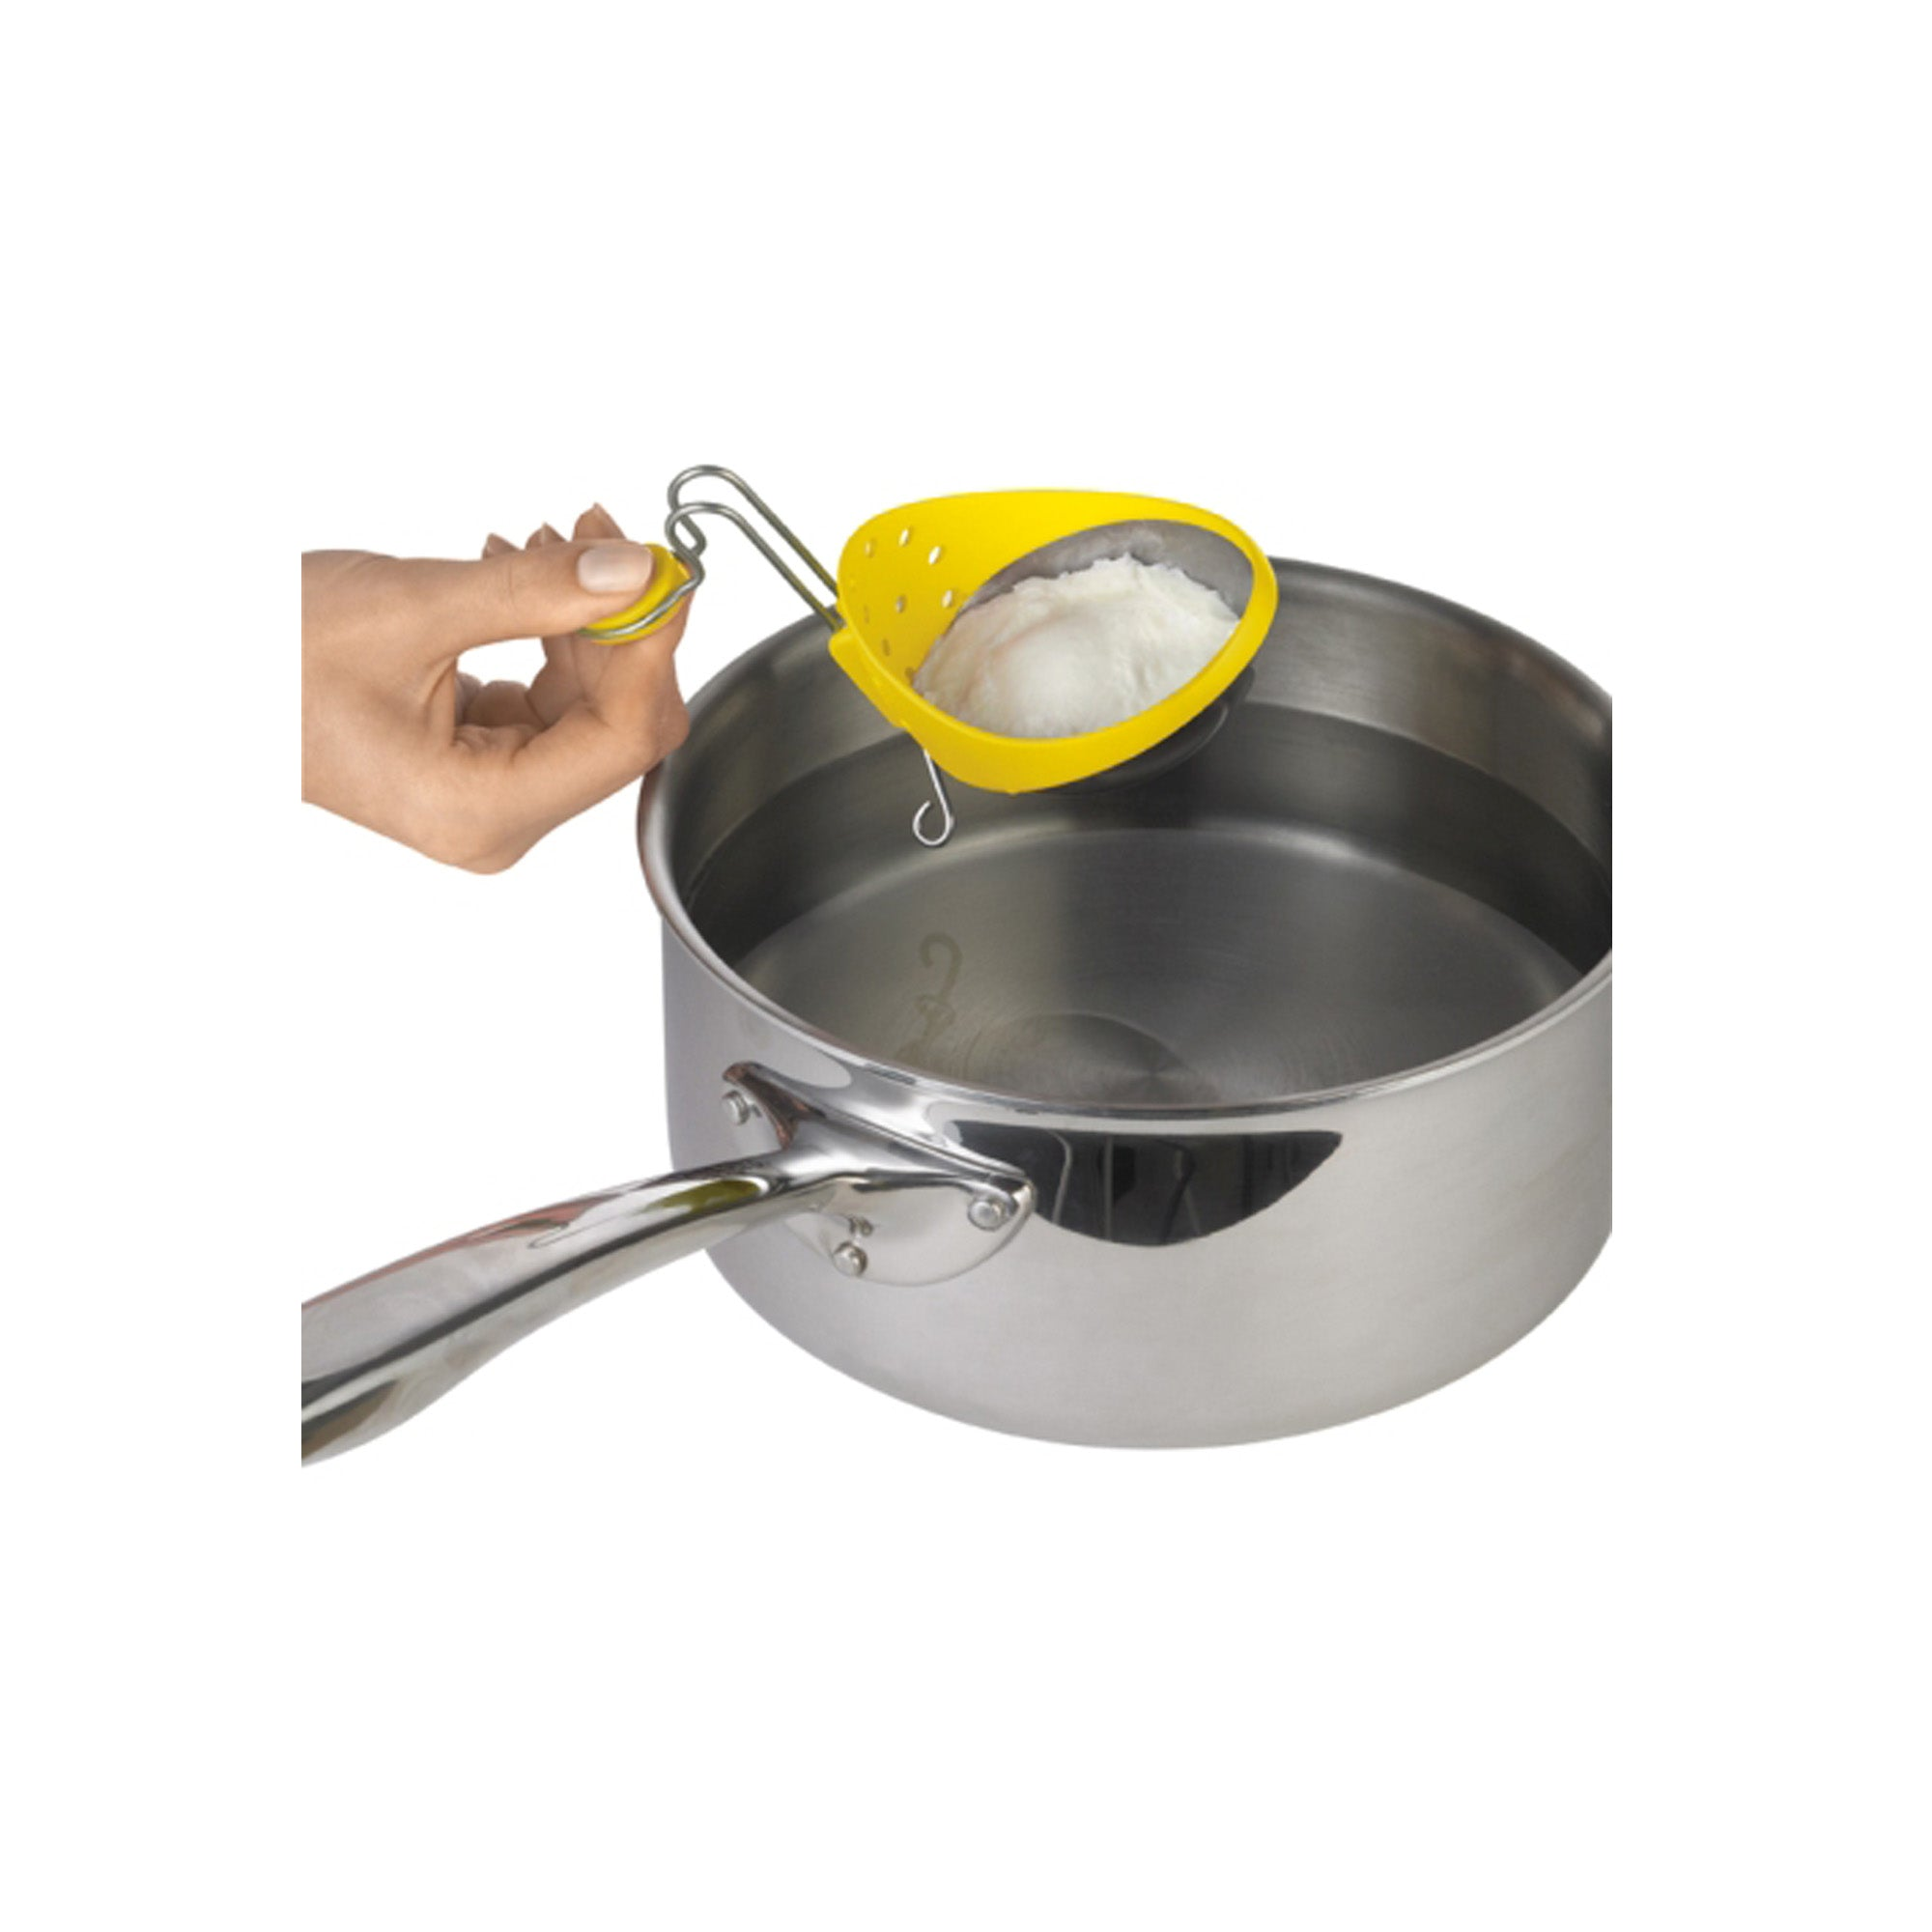 Stainless Steel Egg Poacher